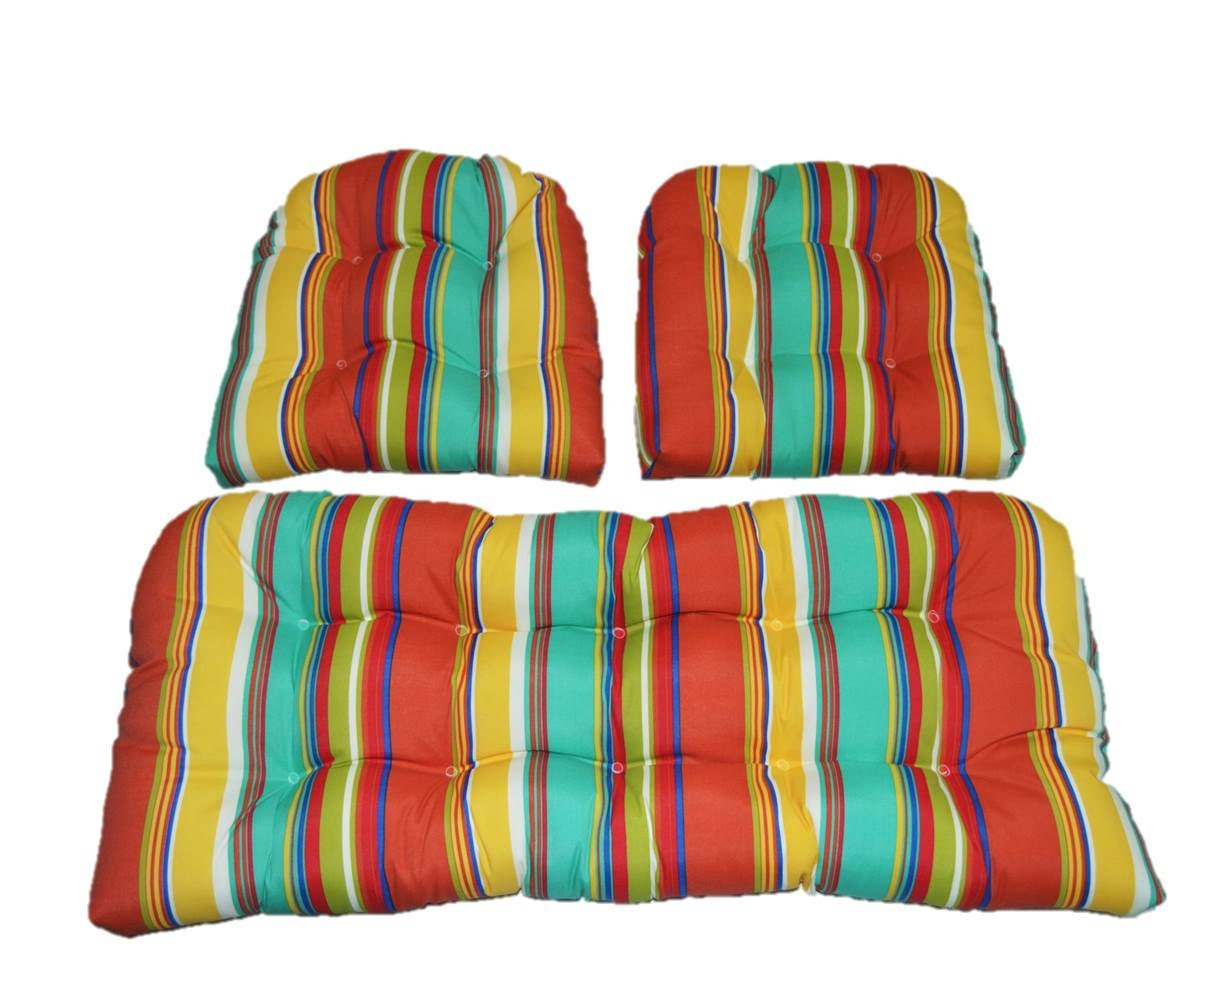 3 Piece Wicker Cushion Set Yellow Green Blue Coral Bright